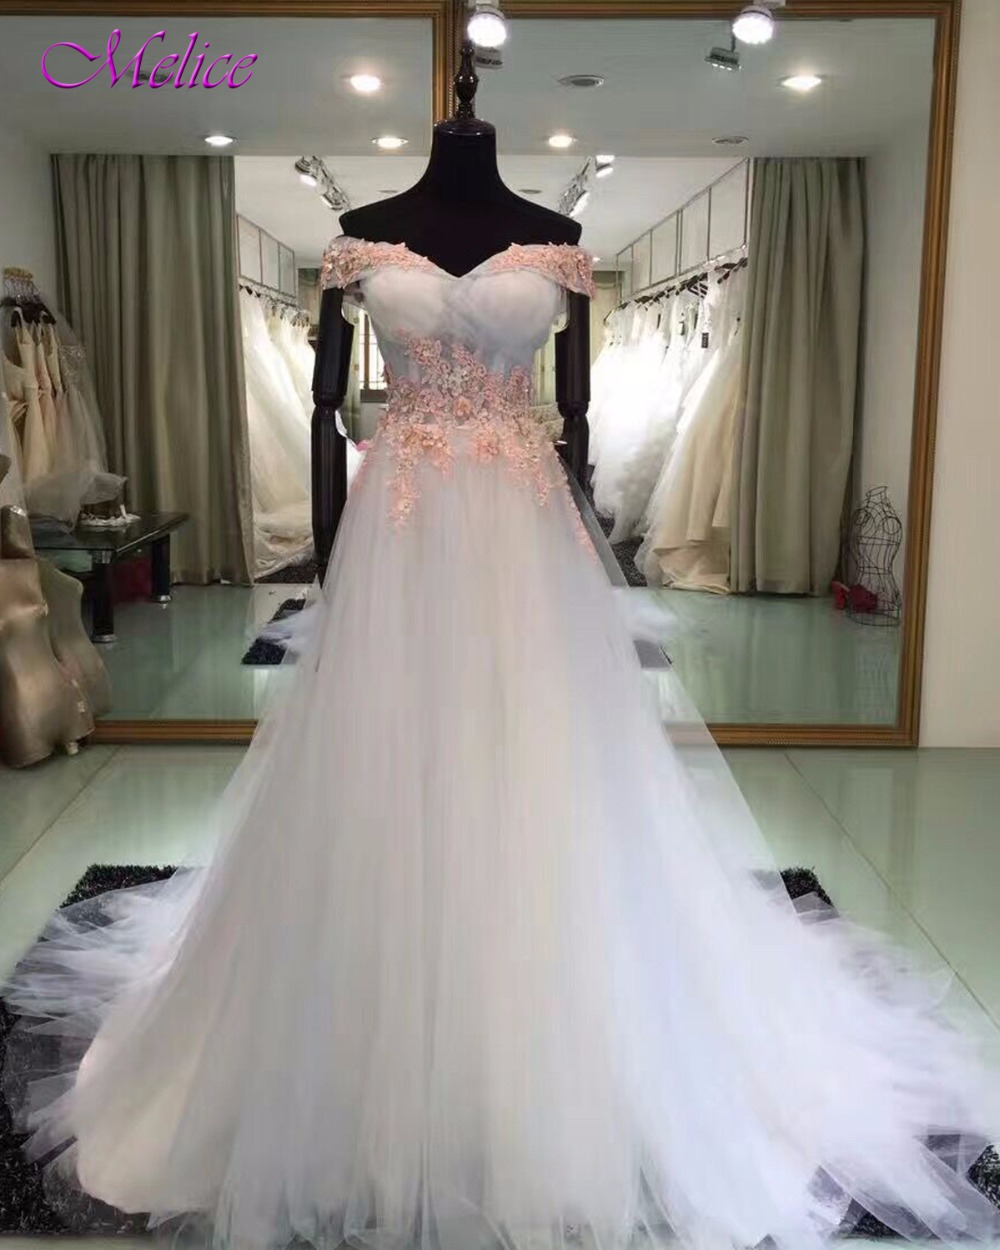 Fmogl New Arrival Fashion Boat Neck A-Line   Prom     Dresses   2019 Appliques Pleated Tulle Celebrity   Dress   Robe De Soiree Plus Size